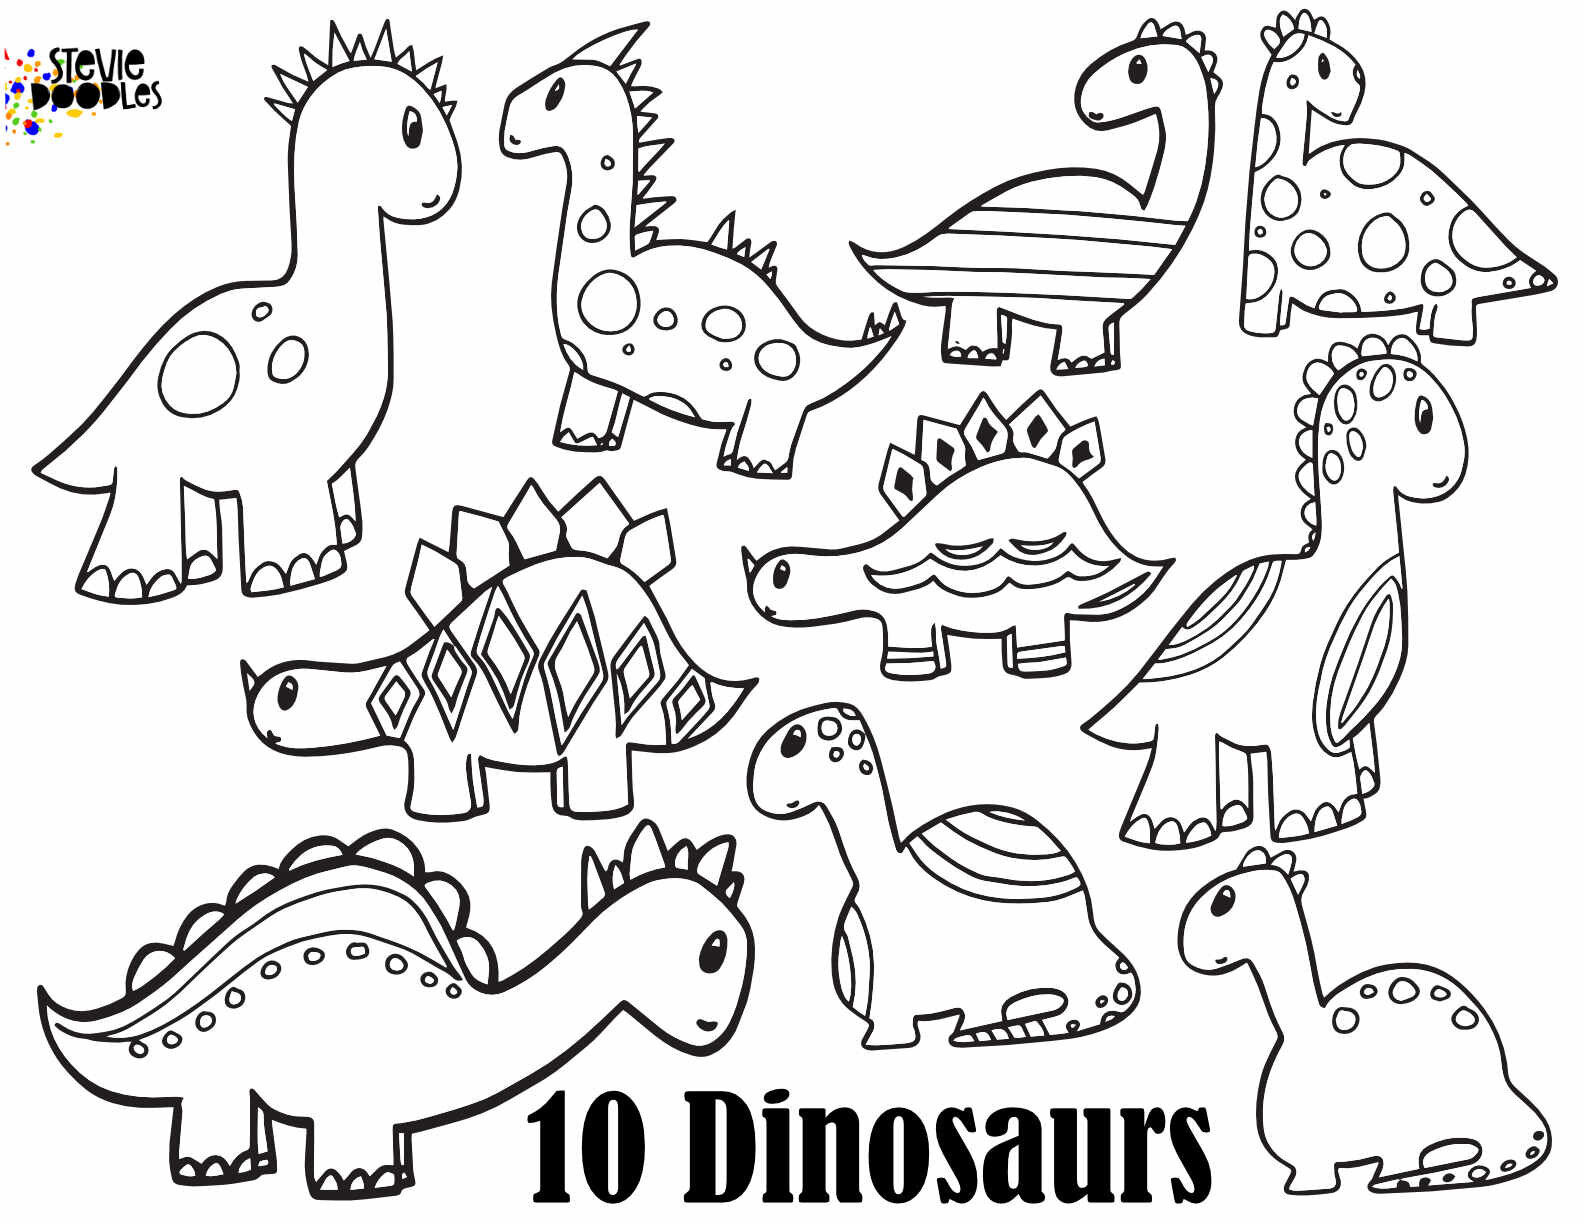 Free Dinosaur Coloring Free Coloring Pages Stevie Doodles